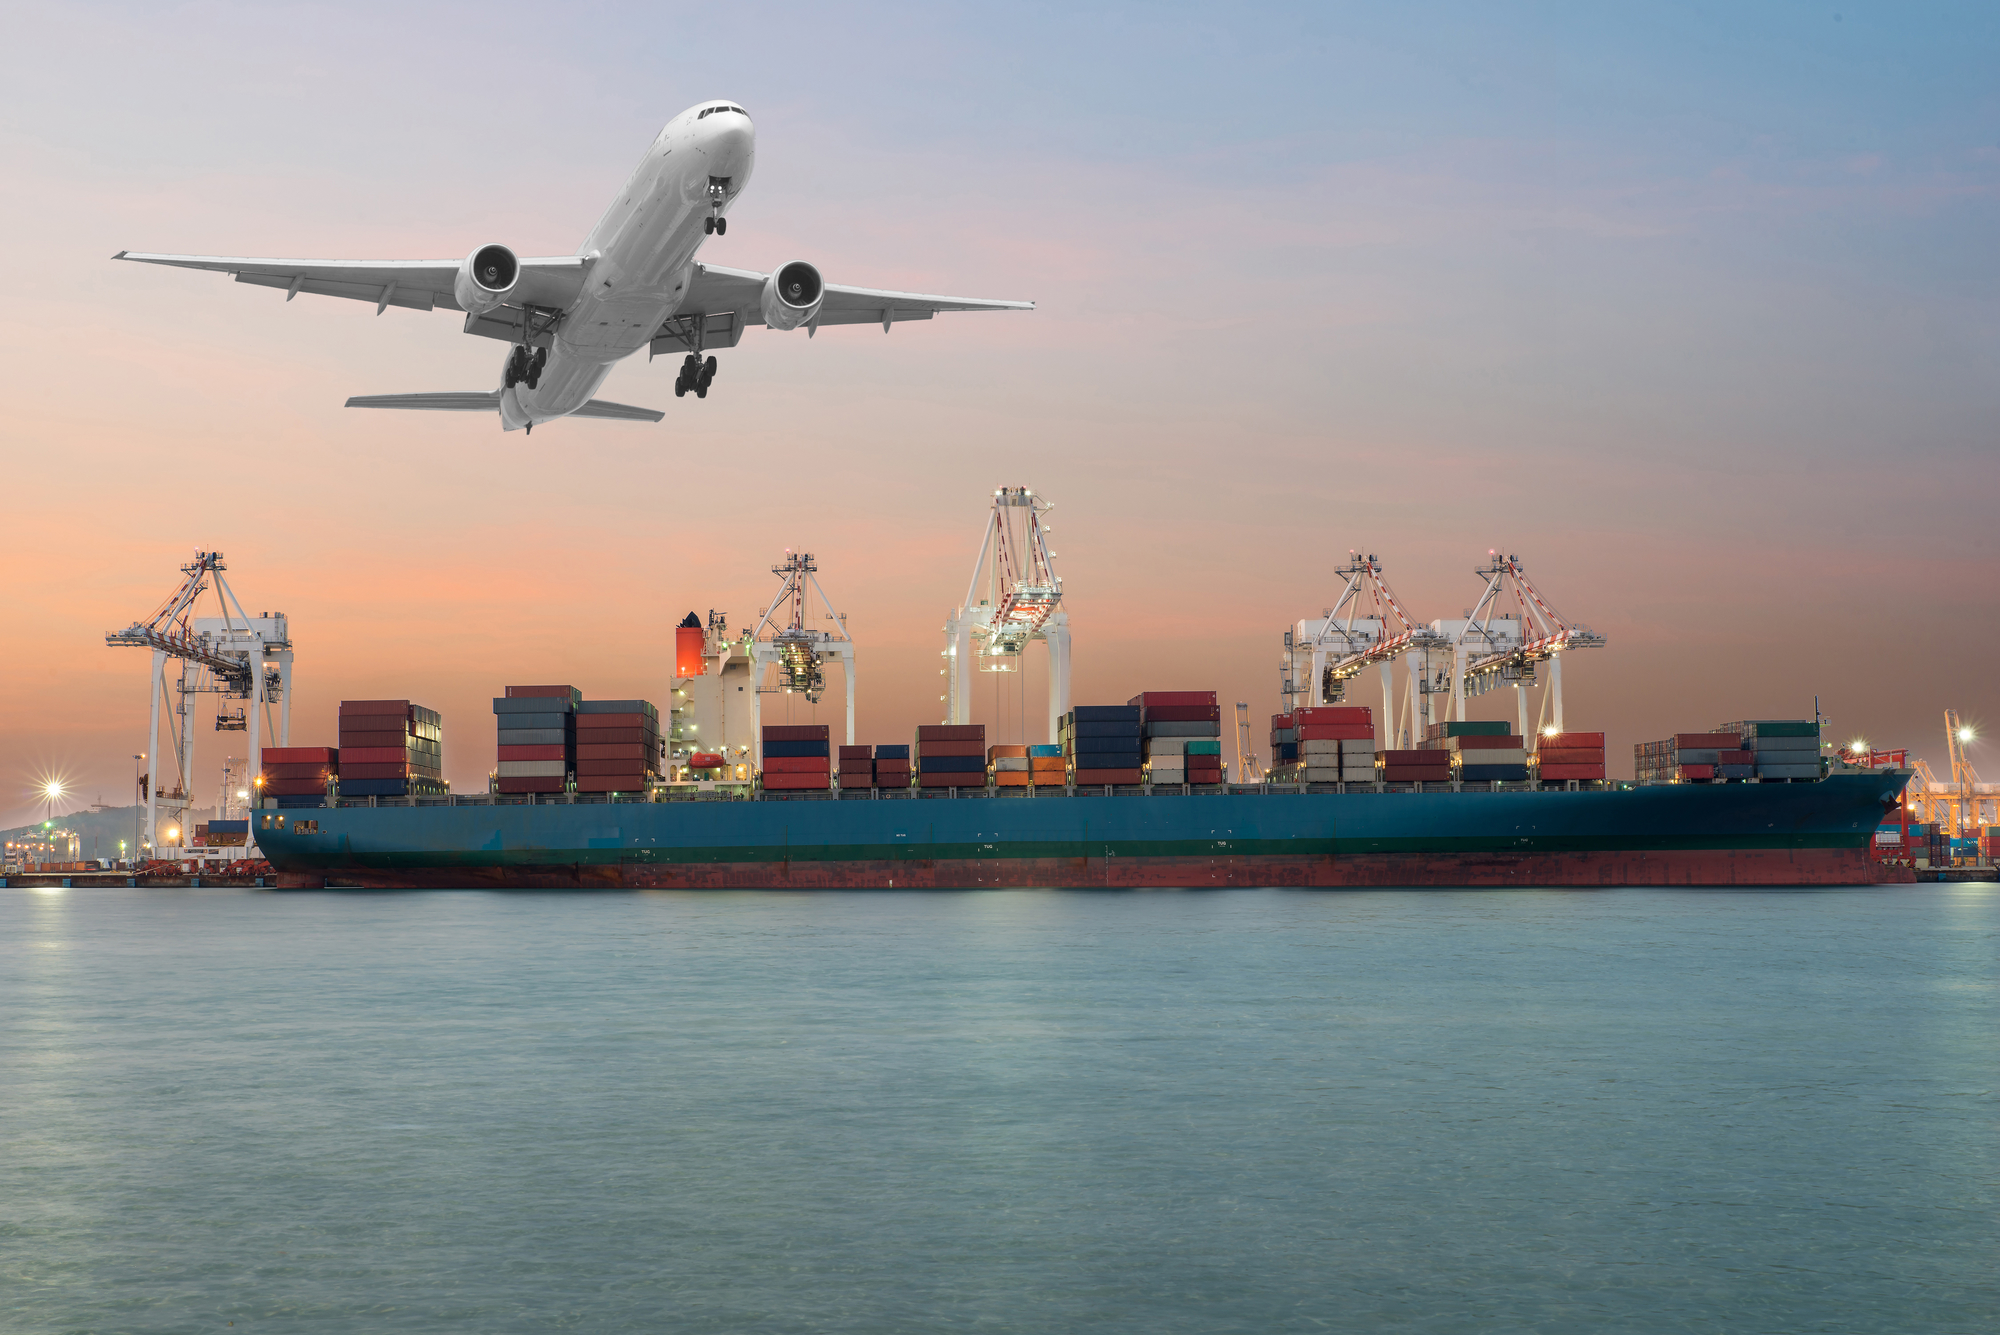 Ocean or Air Transport: What's The Better Choice?